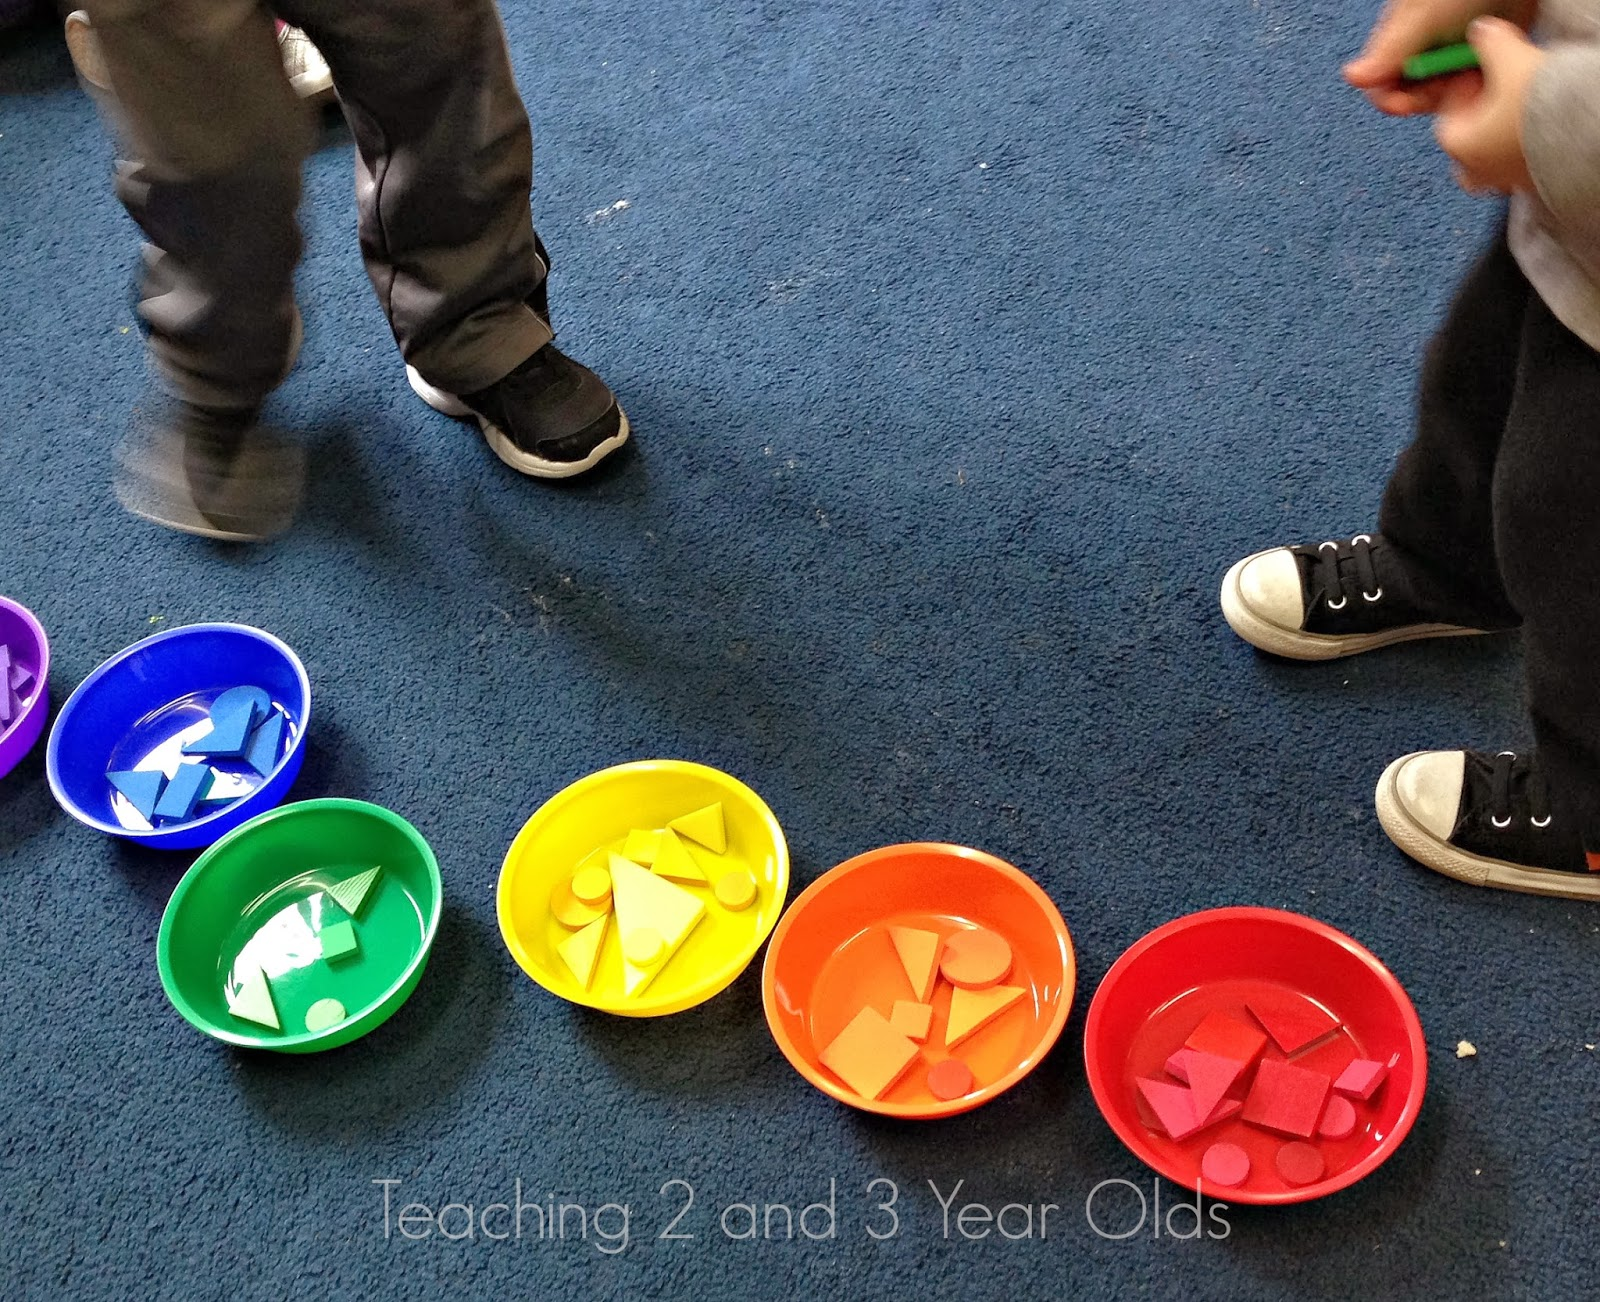 Introducing New Concepts During Circle Time